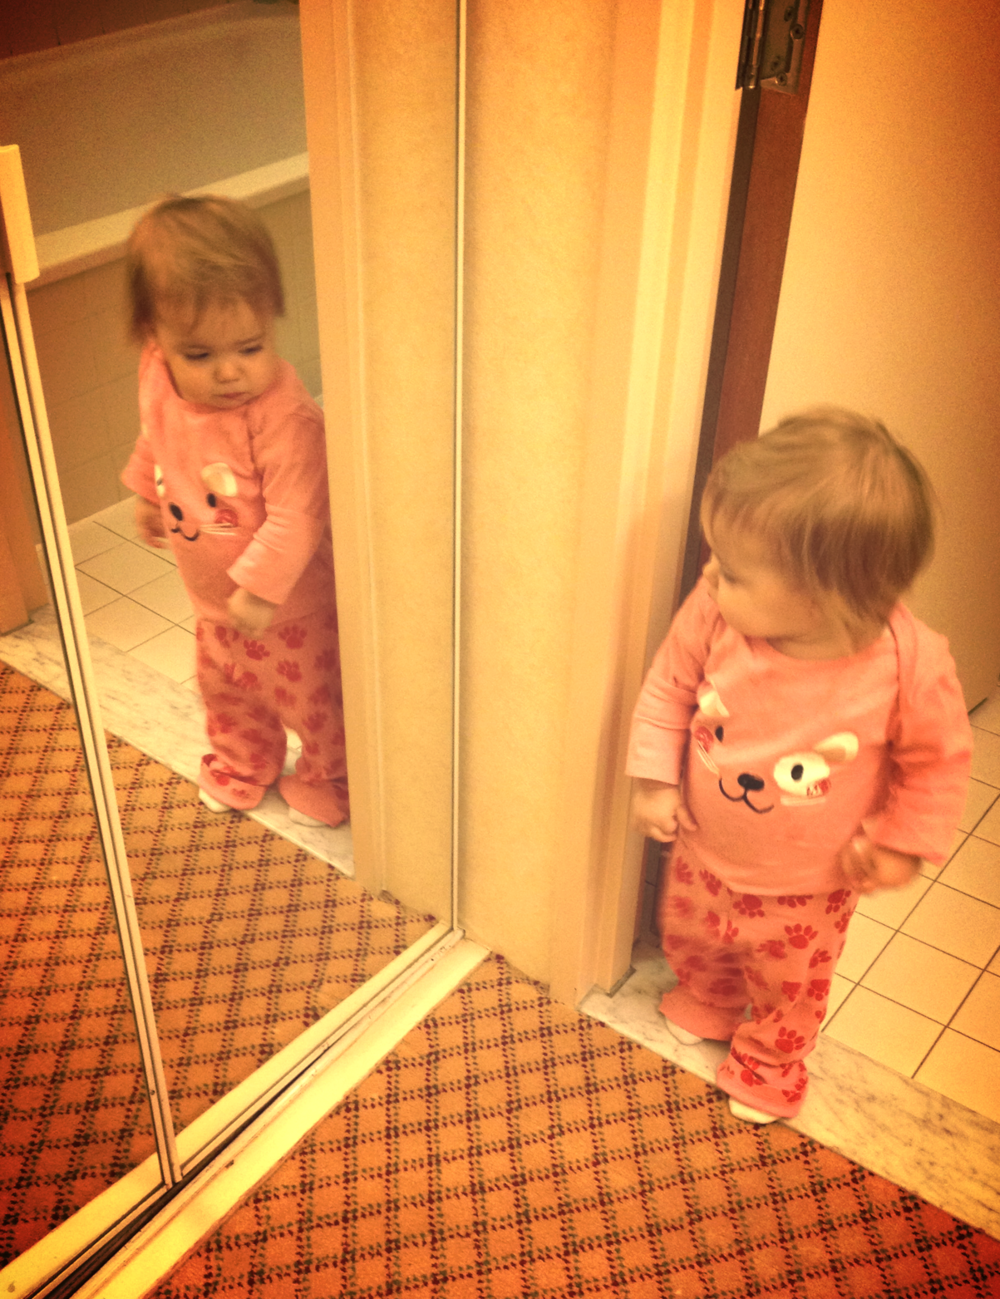 Bug trying to sneak up on her reflection in the hotel mirror...!